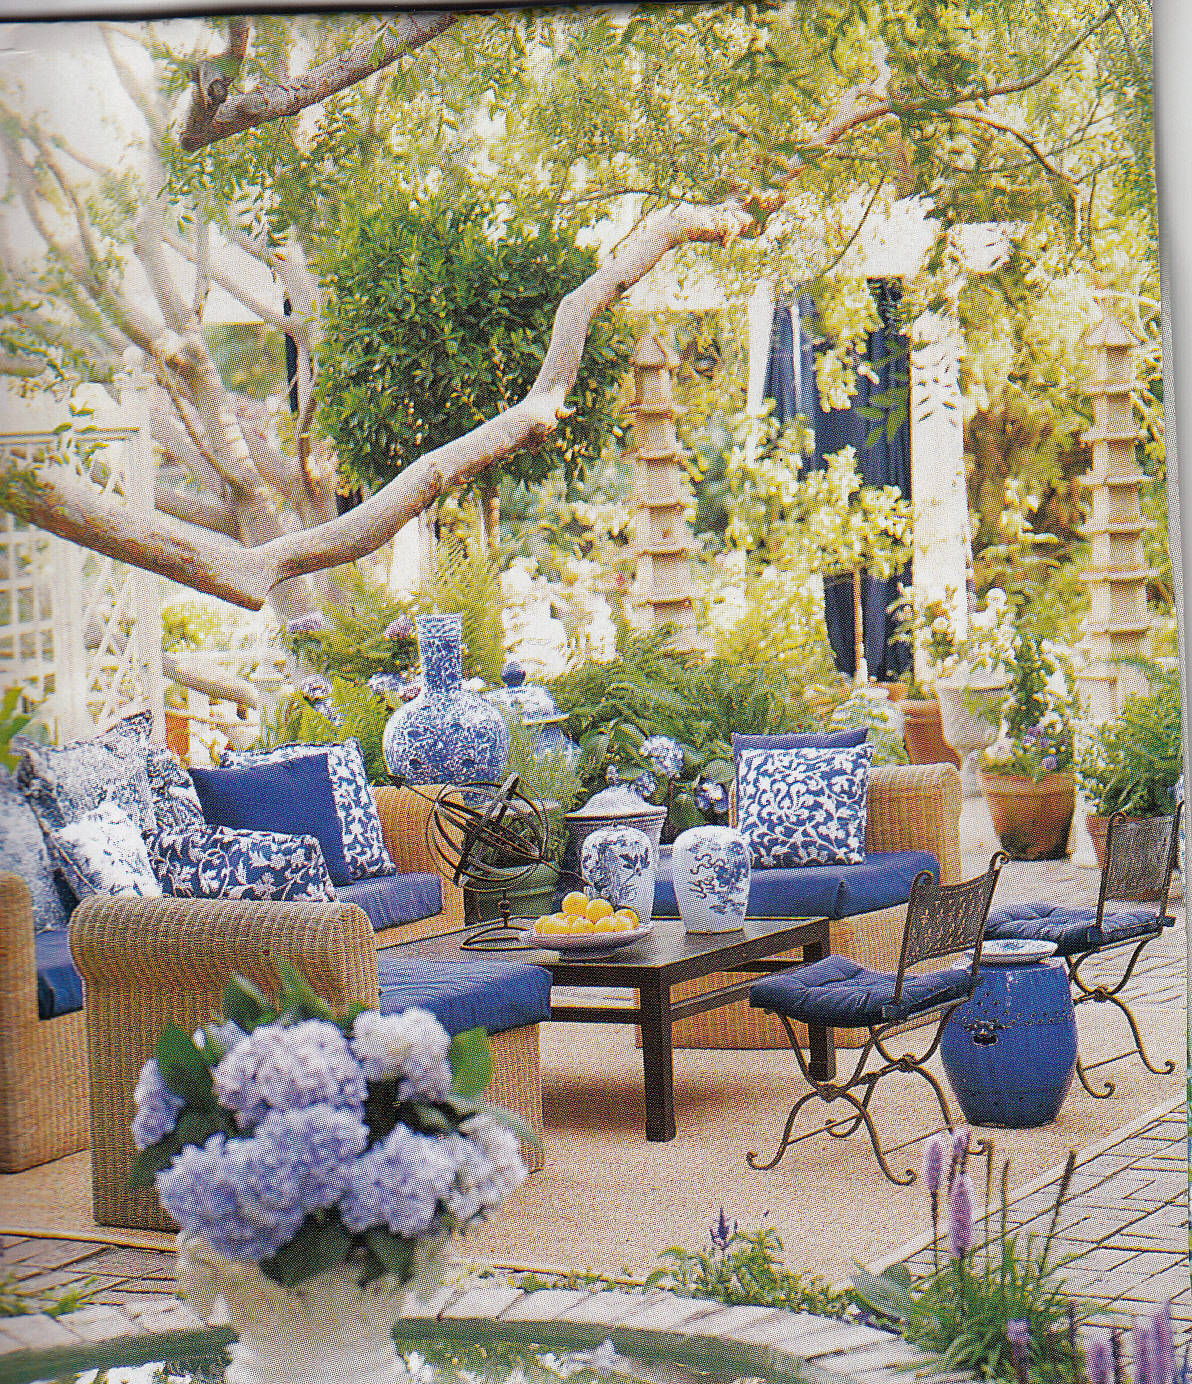 Hydrangea Hill Cottage French Country Decorating: Hydrangea Hill Cottage: Blue And White Outdoors Room